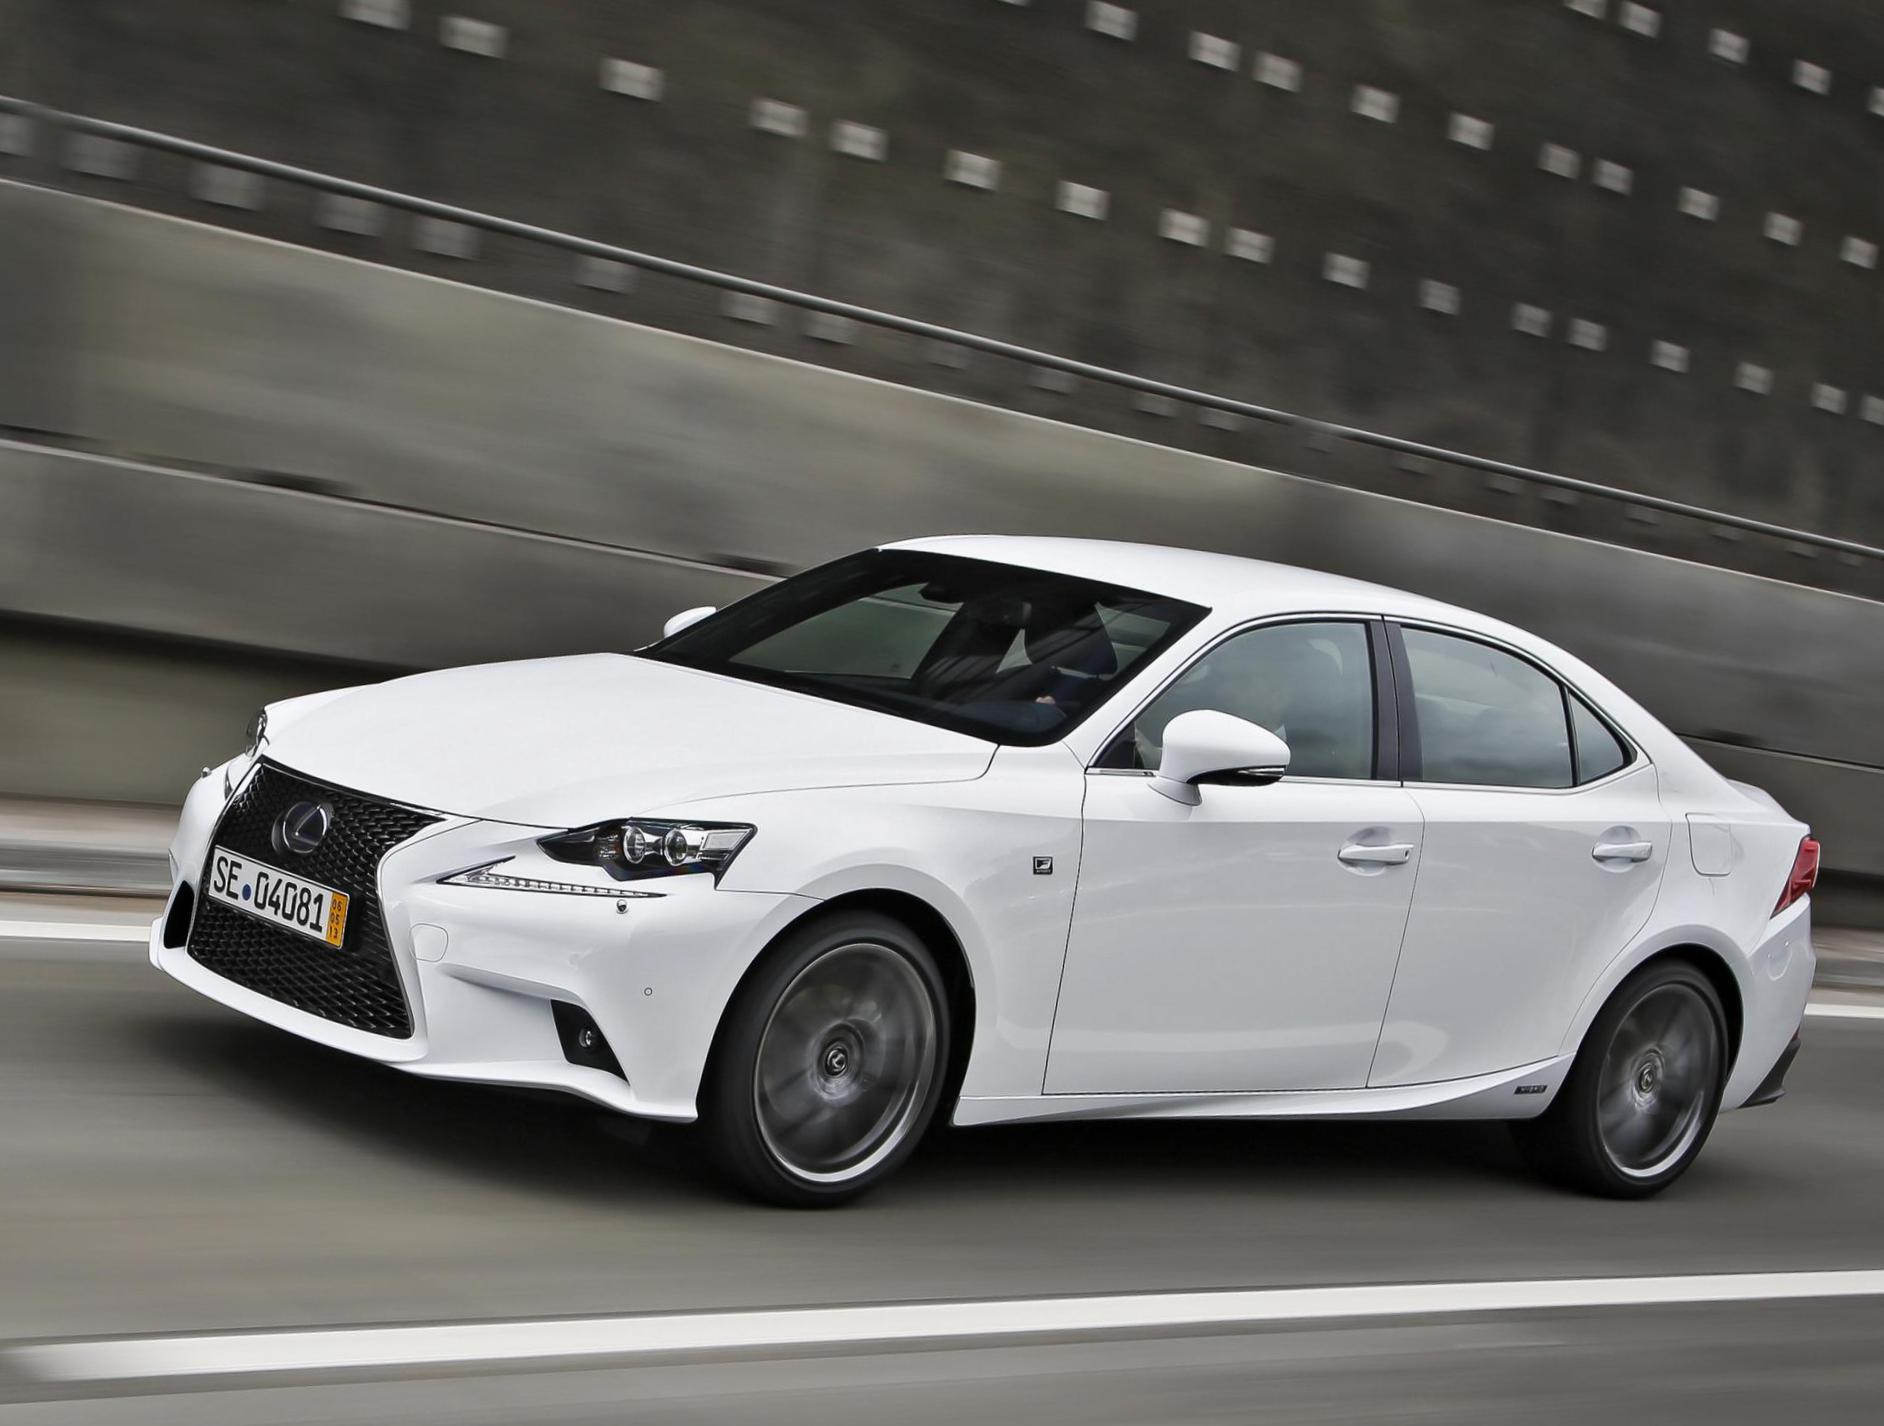 Lexus IS 300h Photos and Specs. Photo: Lexus IS 300h reviews and 29